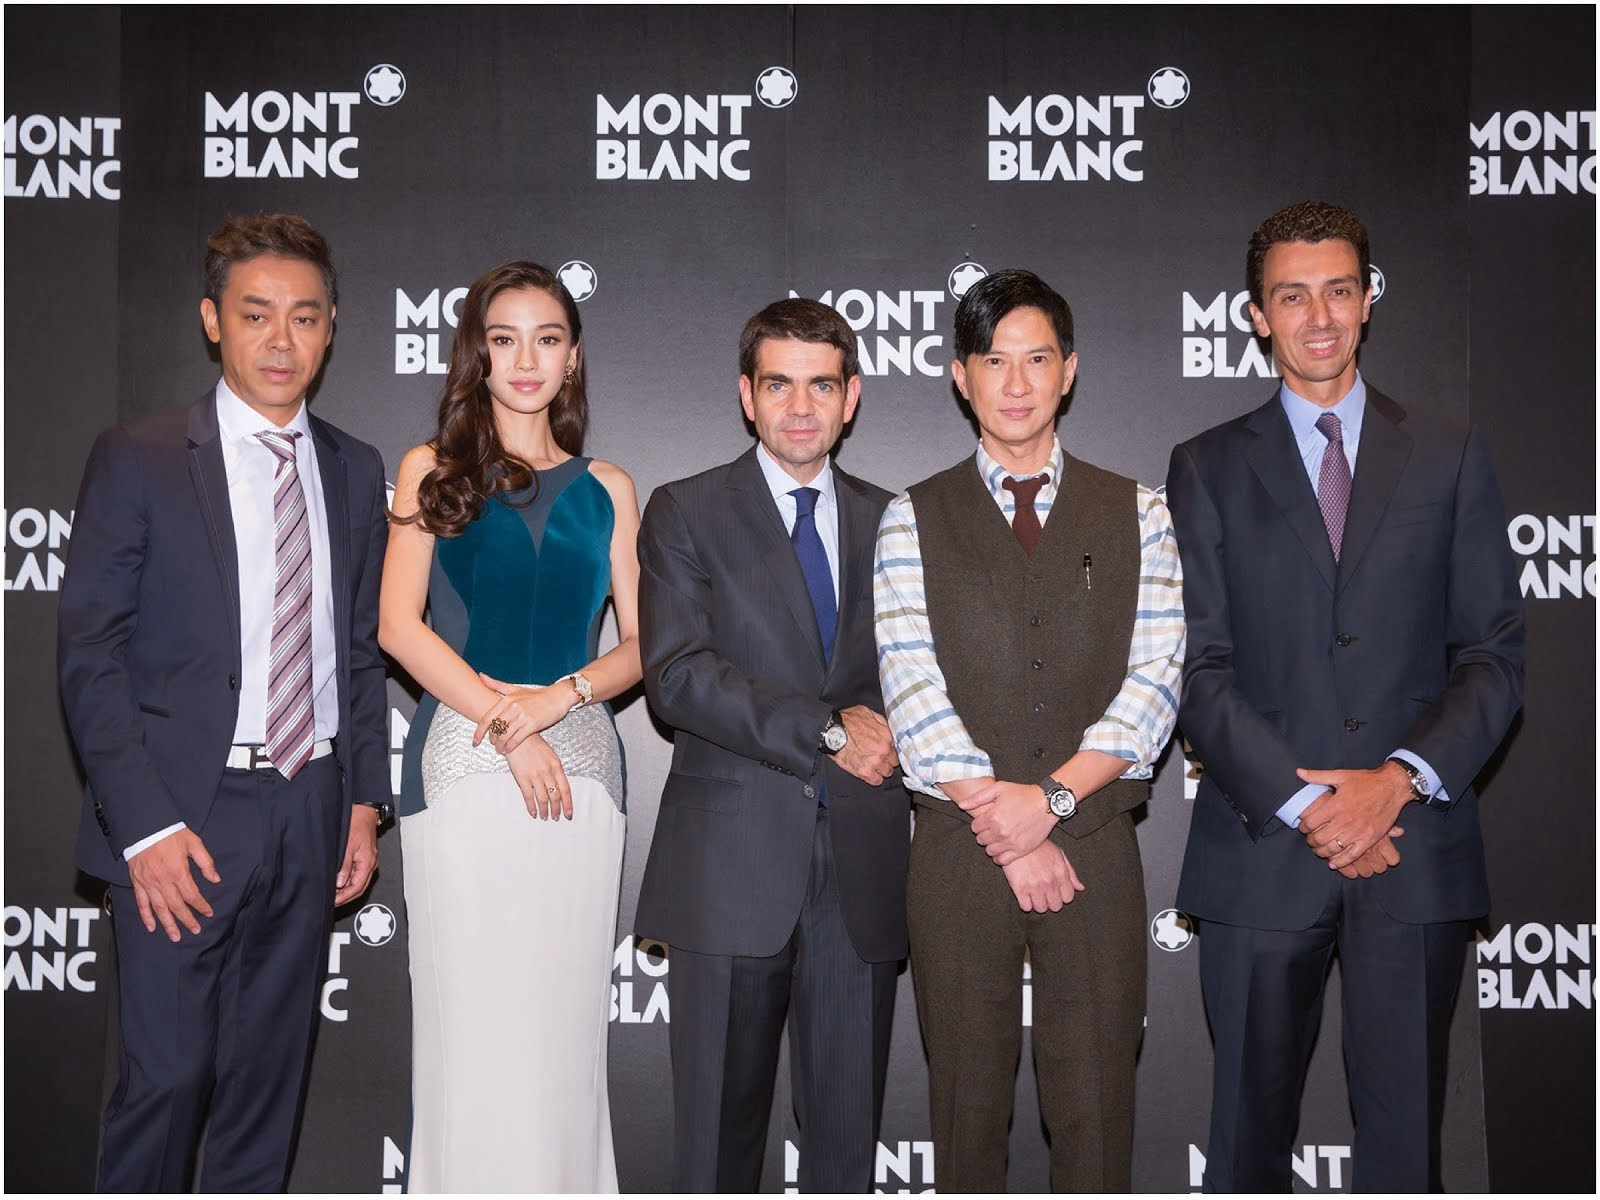 00O00 Menswear Blog: Montblanc Watches & Wonder 2013